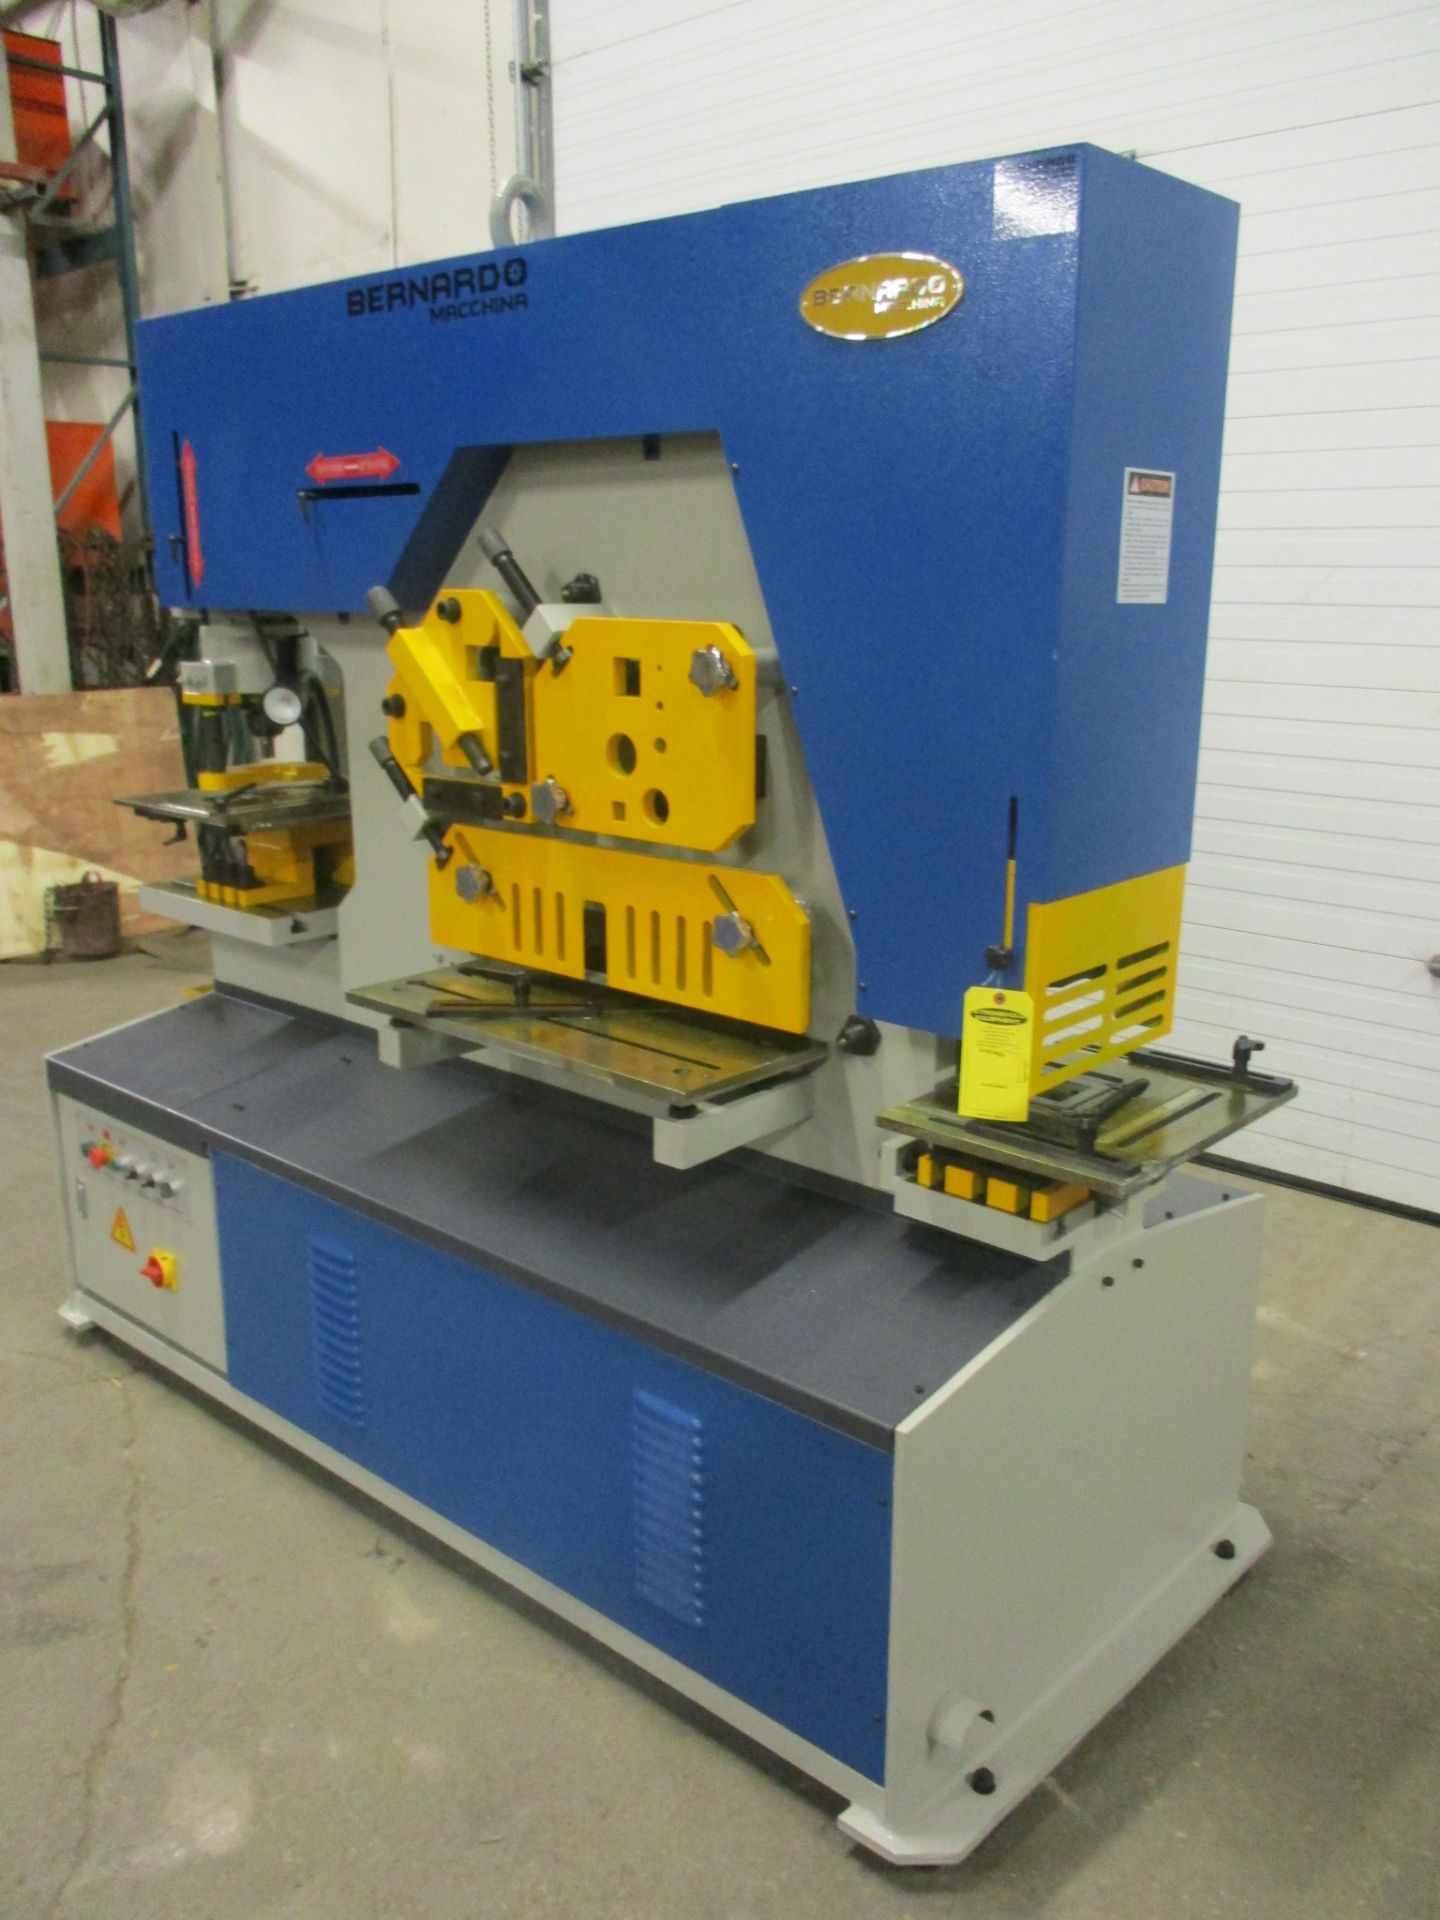 Bernardo Macchina 125 Ton Capacity Hydraulic Ironworker - complete with dies and punches - Dual - Image 3 of 3